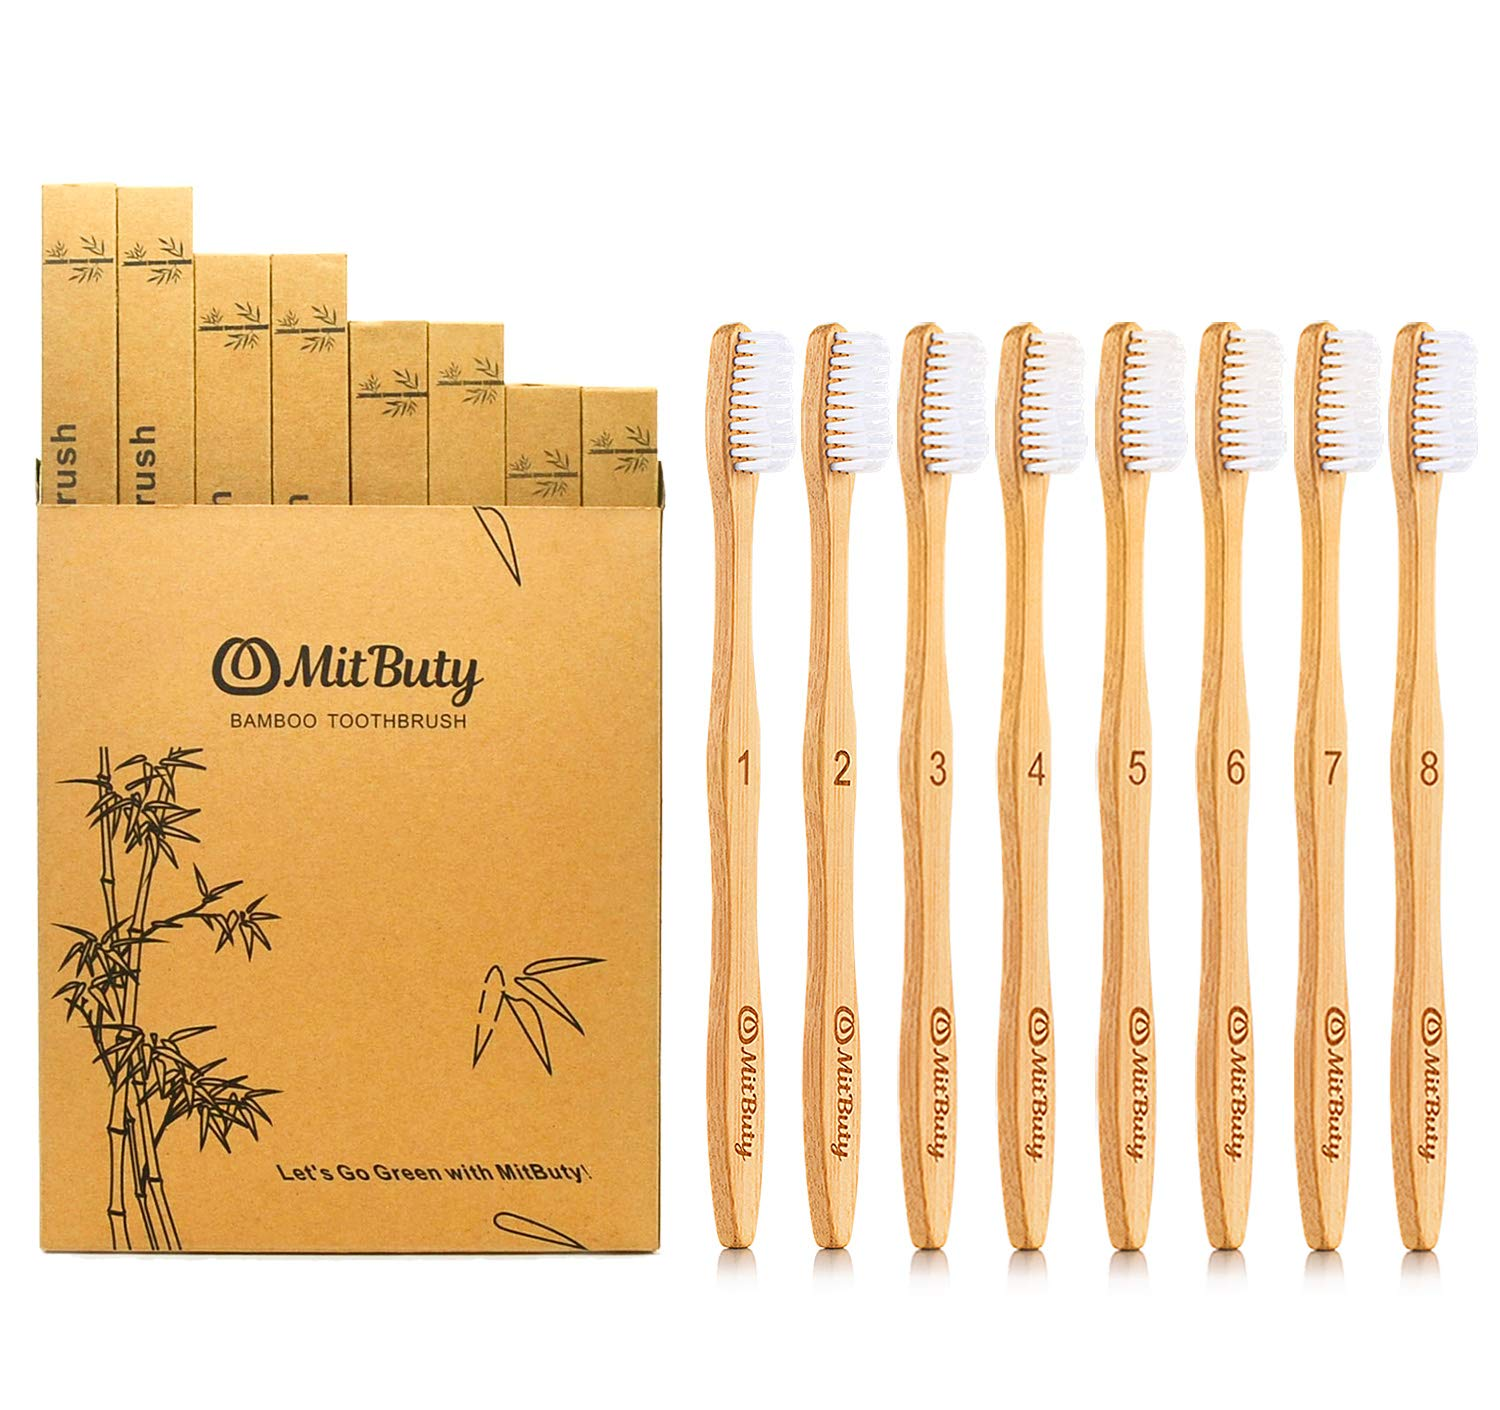 MitButy bamboo toothbrush from Amazon